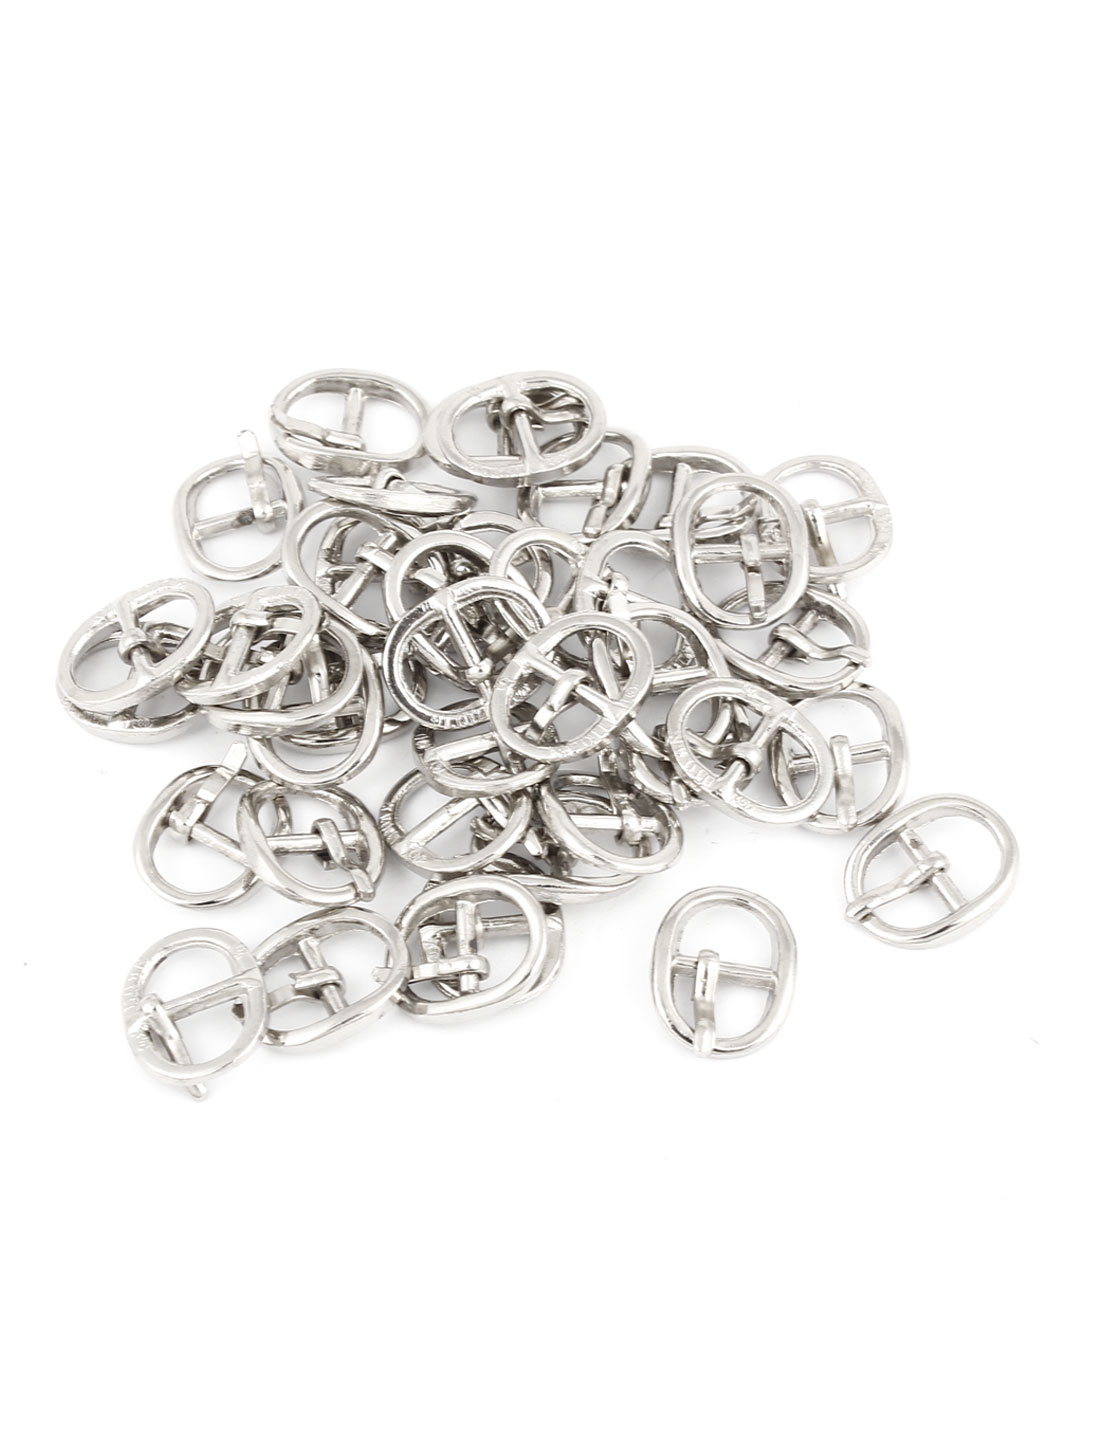 40 Pcs Metallic Single Prong Pin Buckles for 7mm Wide Shoes Belt